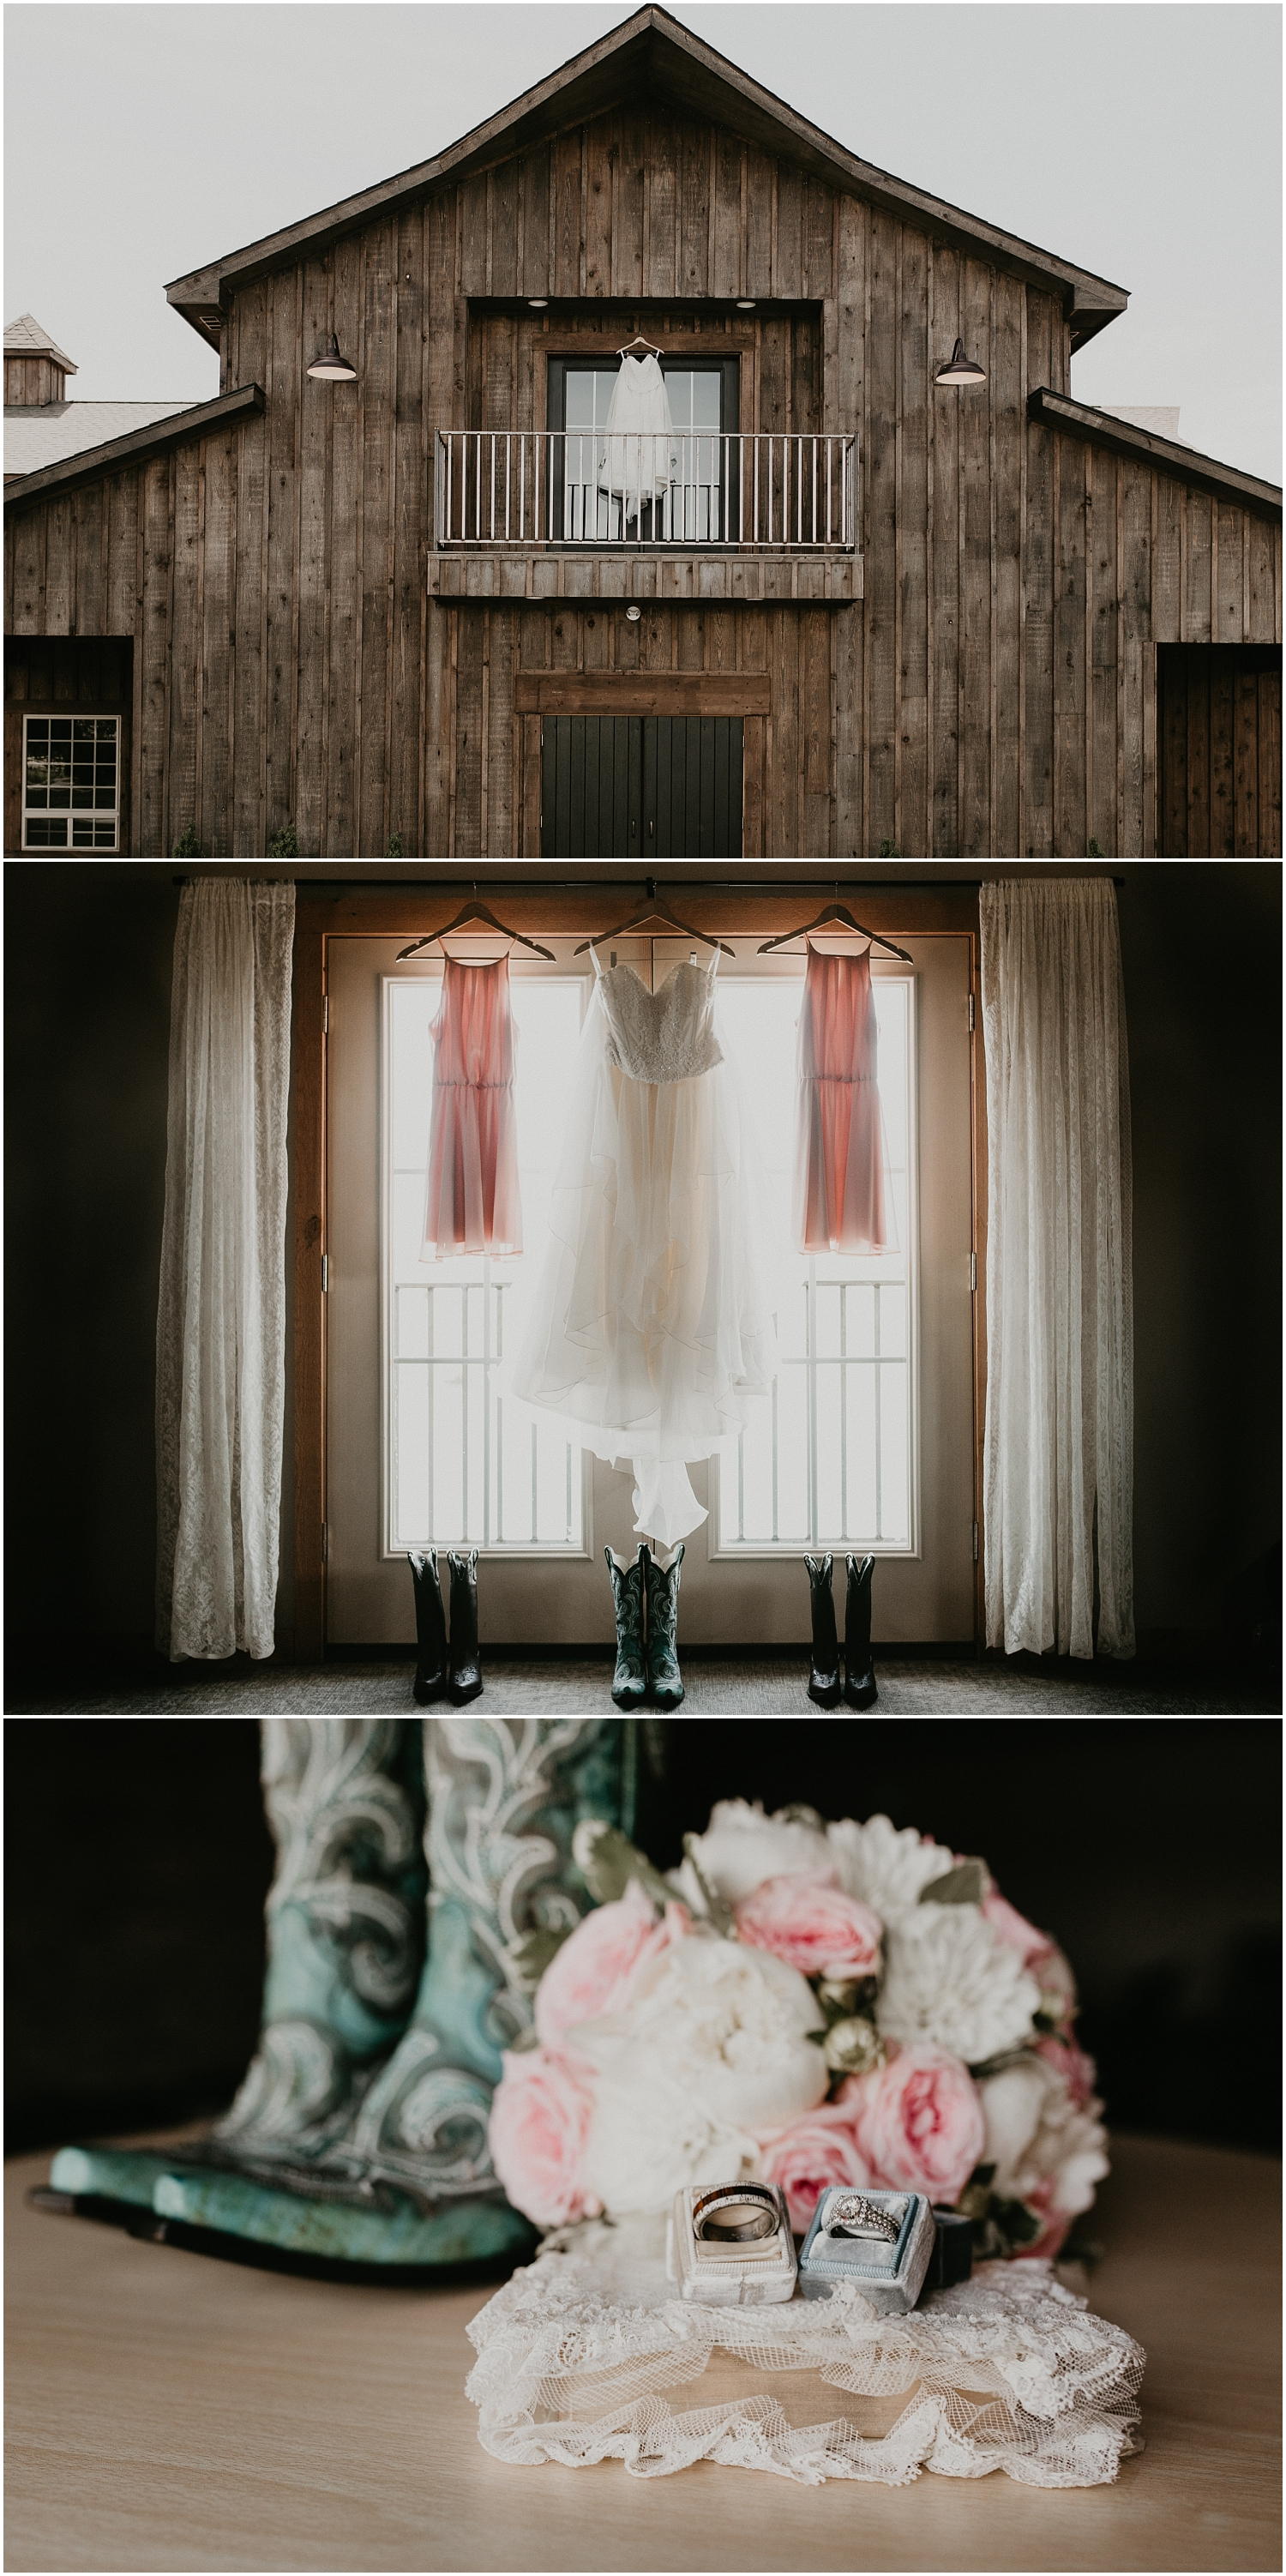 Boise Wedding Photographer Makayla Madden Photography Still Water Hollow Boise Wedding Venue Barn Country Chic Rustic Wedding Ideas Boots Wedding Dress Boise Senior Photographer